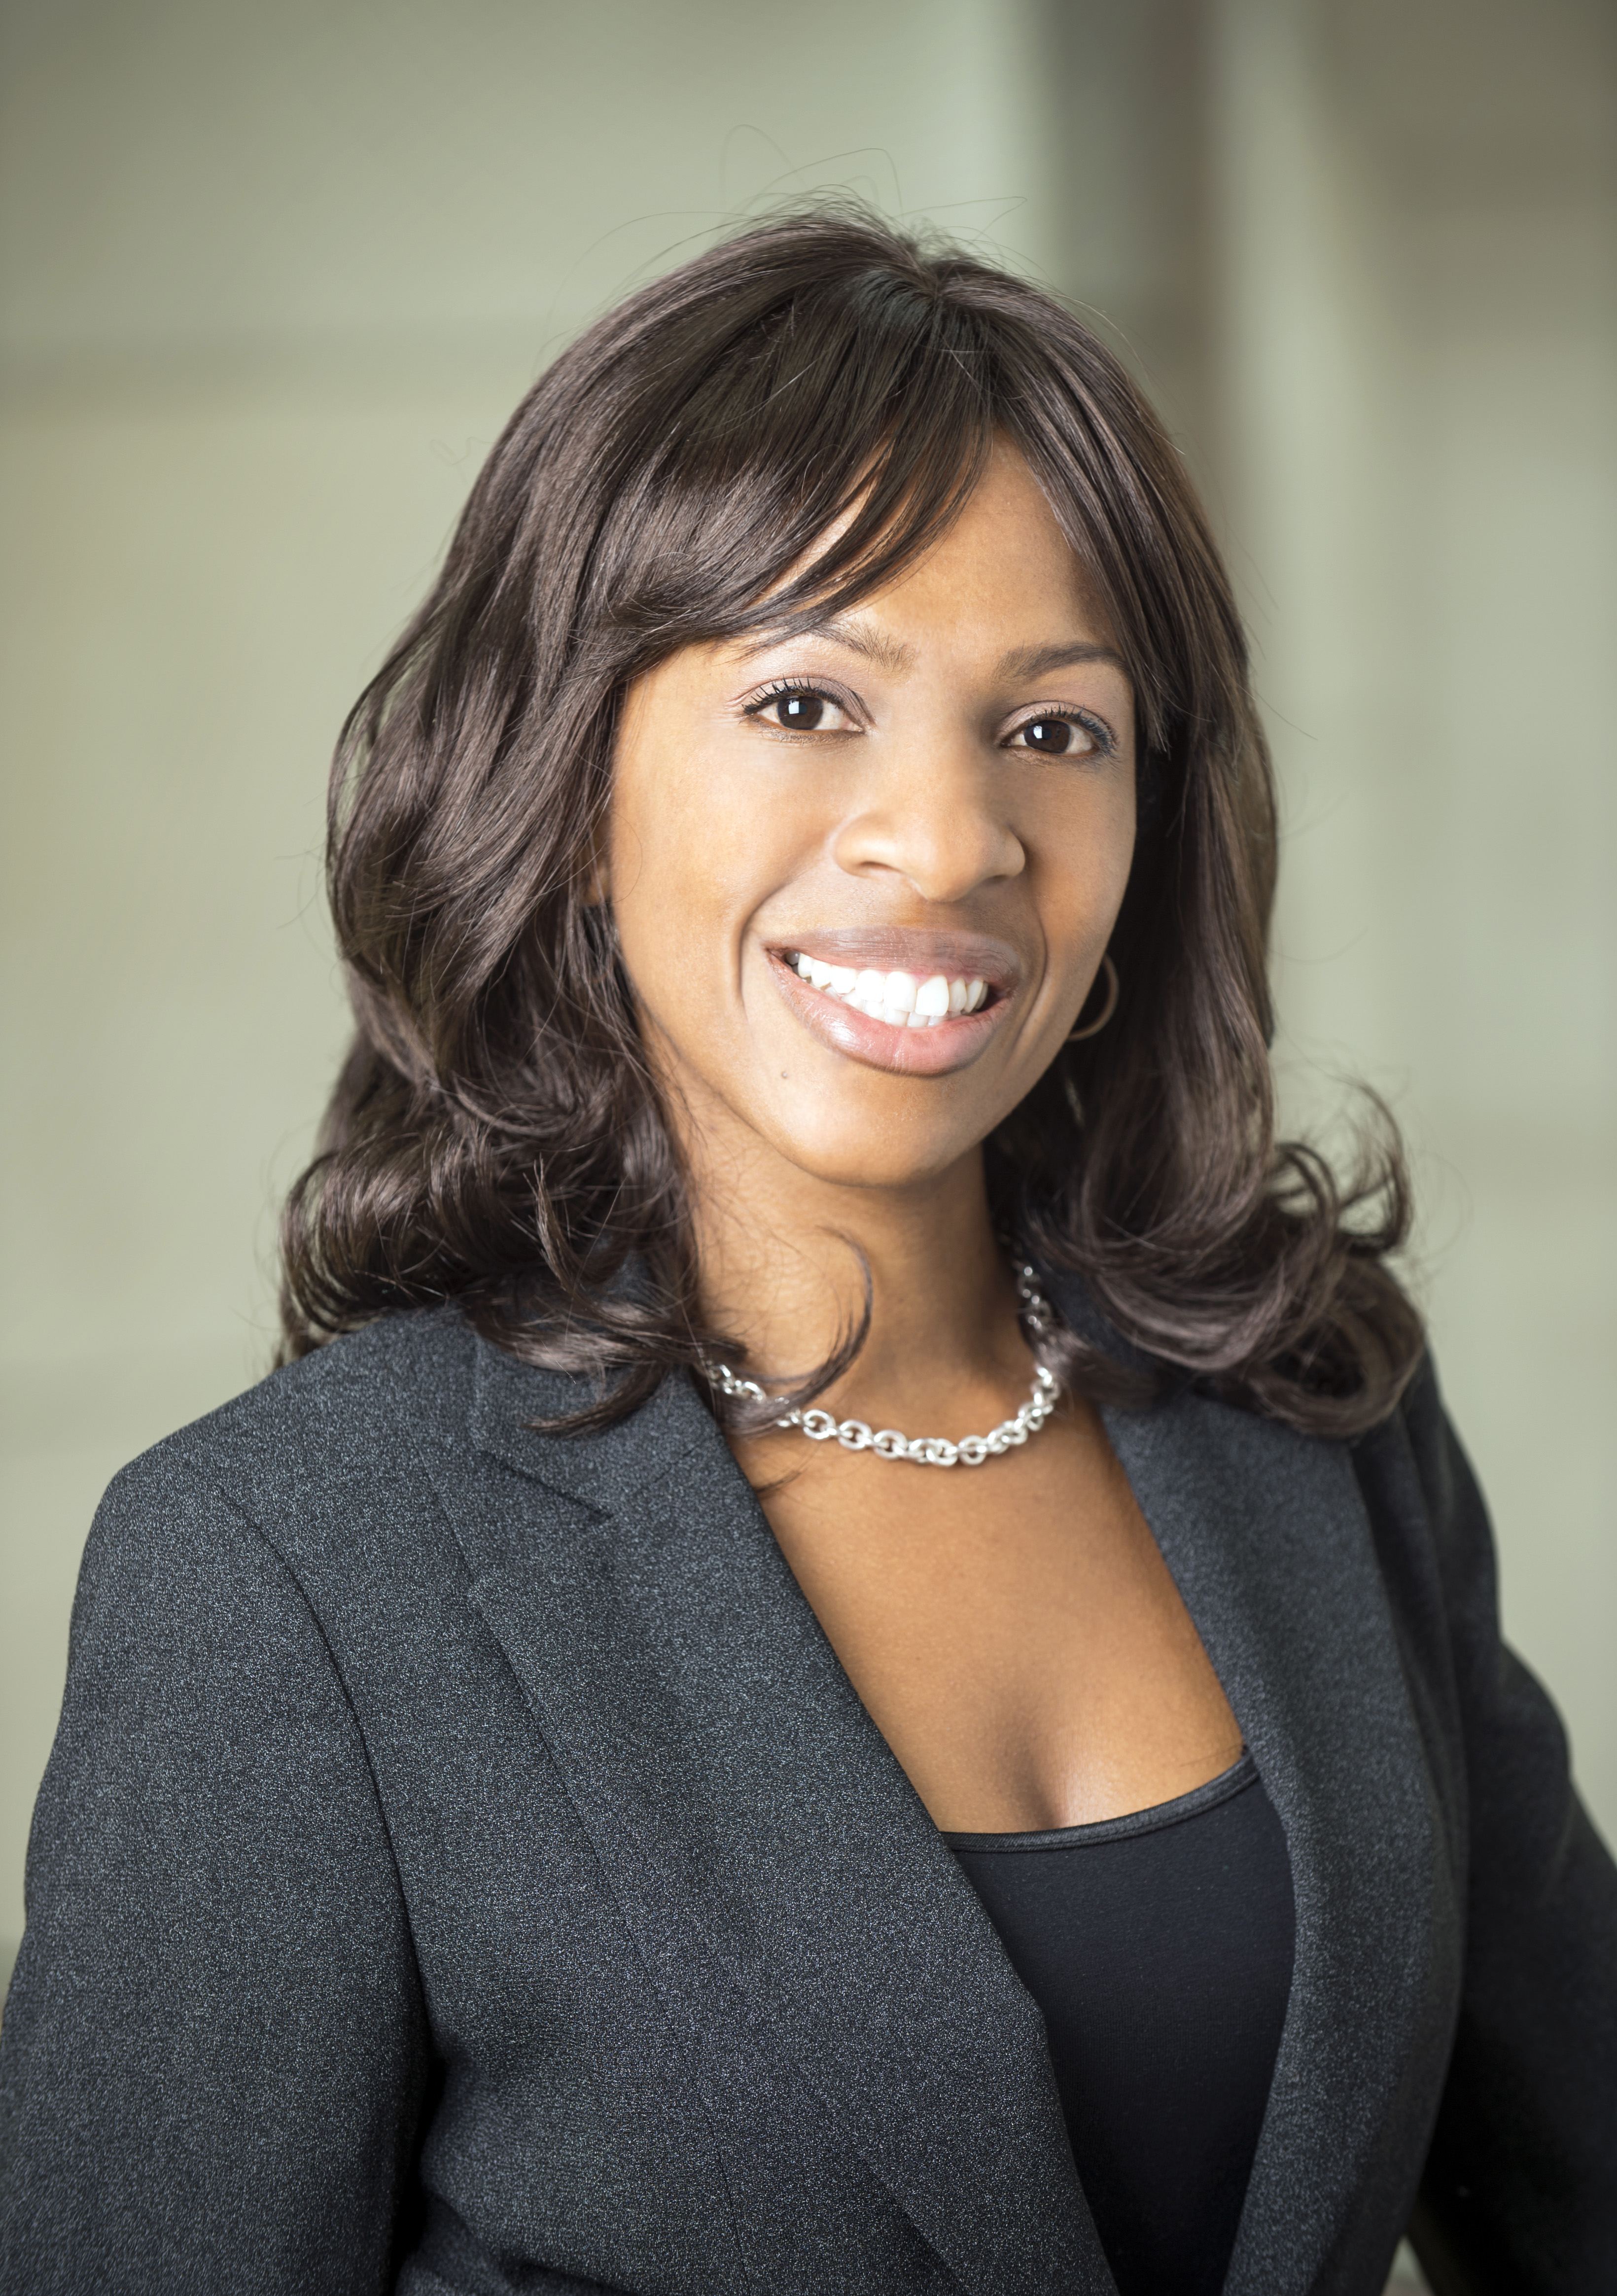 Attorney Rwanda Campbell provides pro bono service and helps Estella rebuild her life.